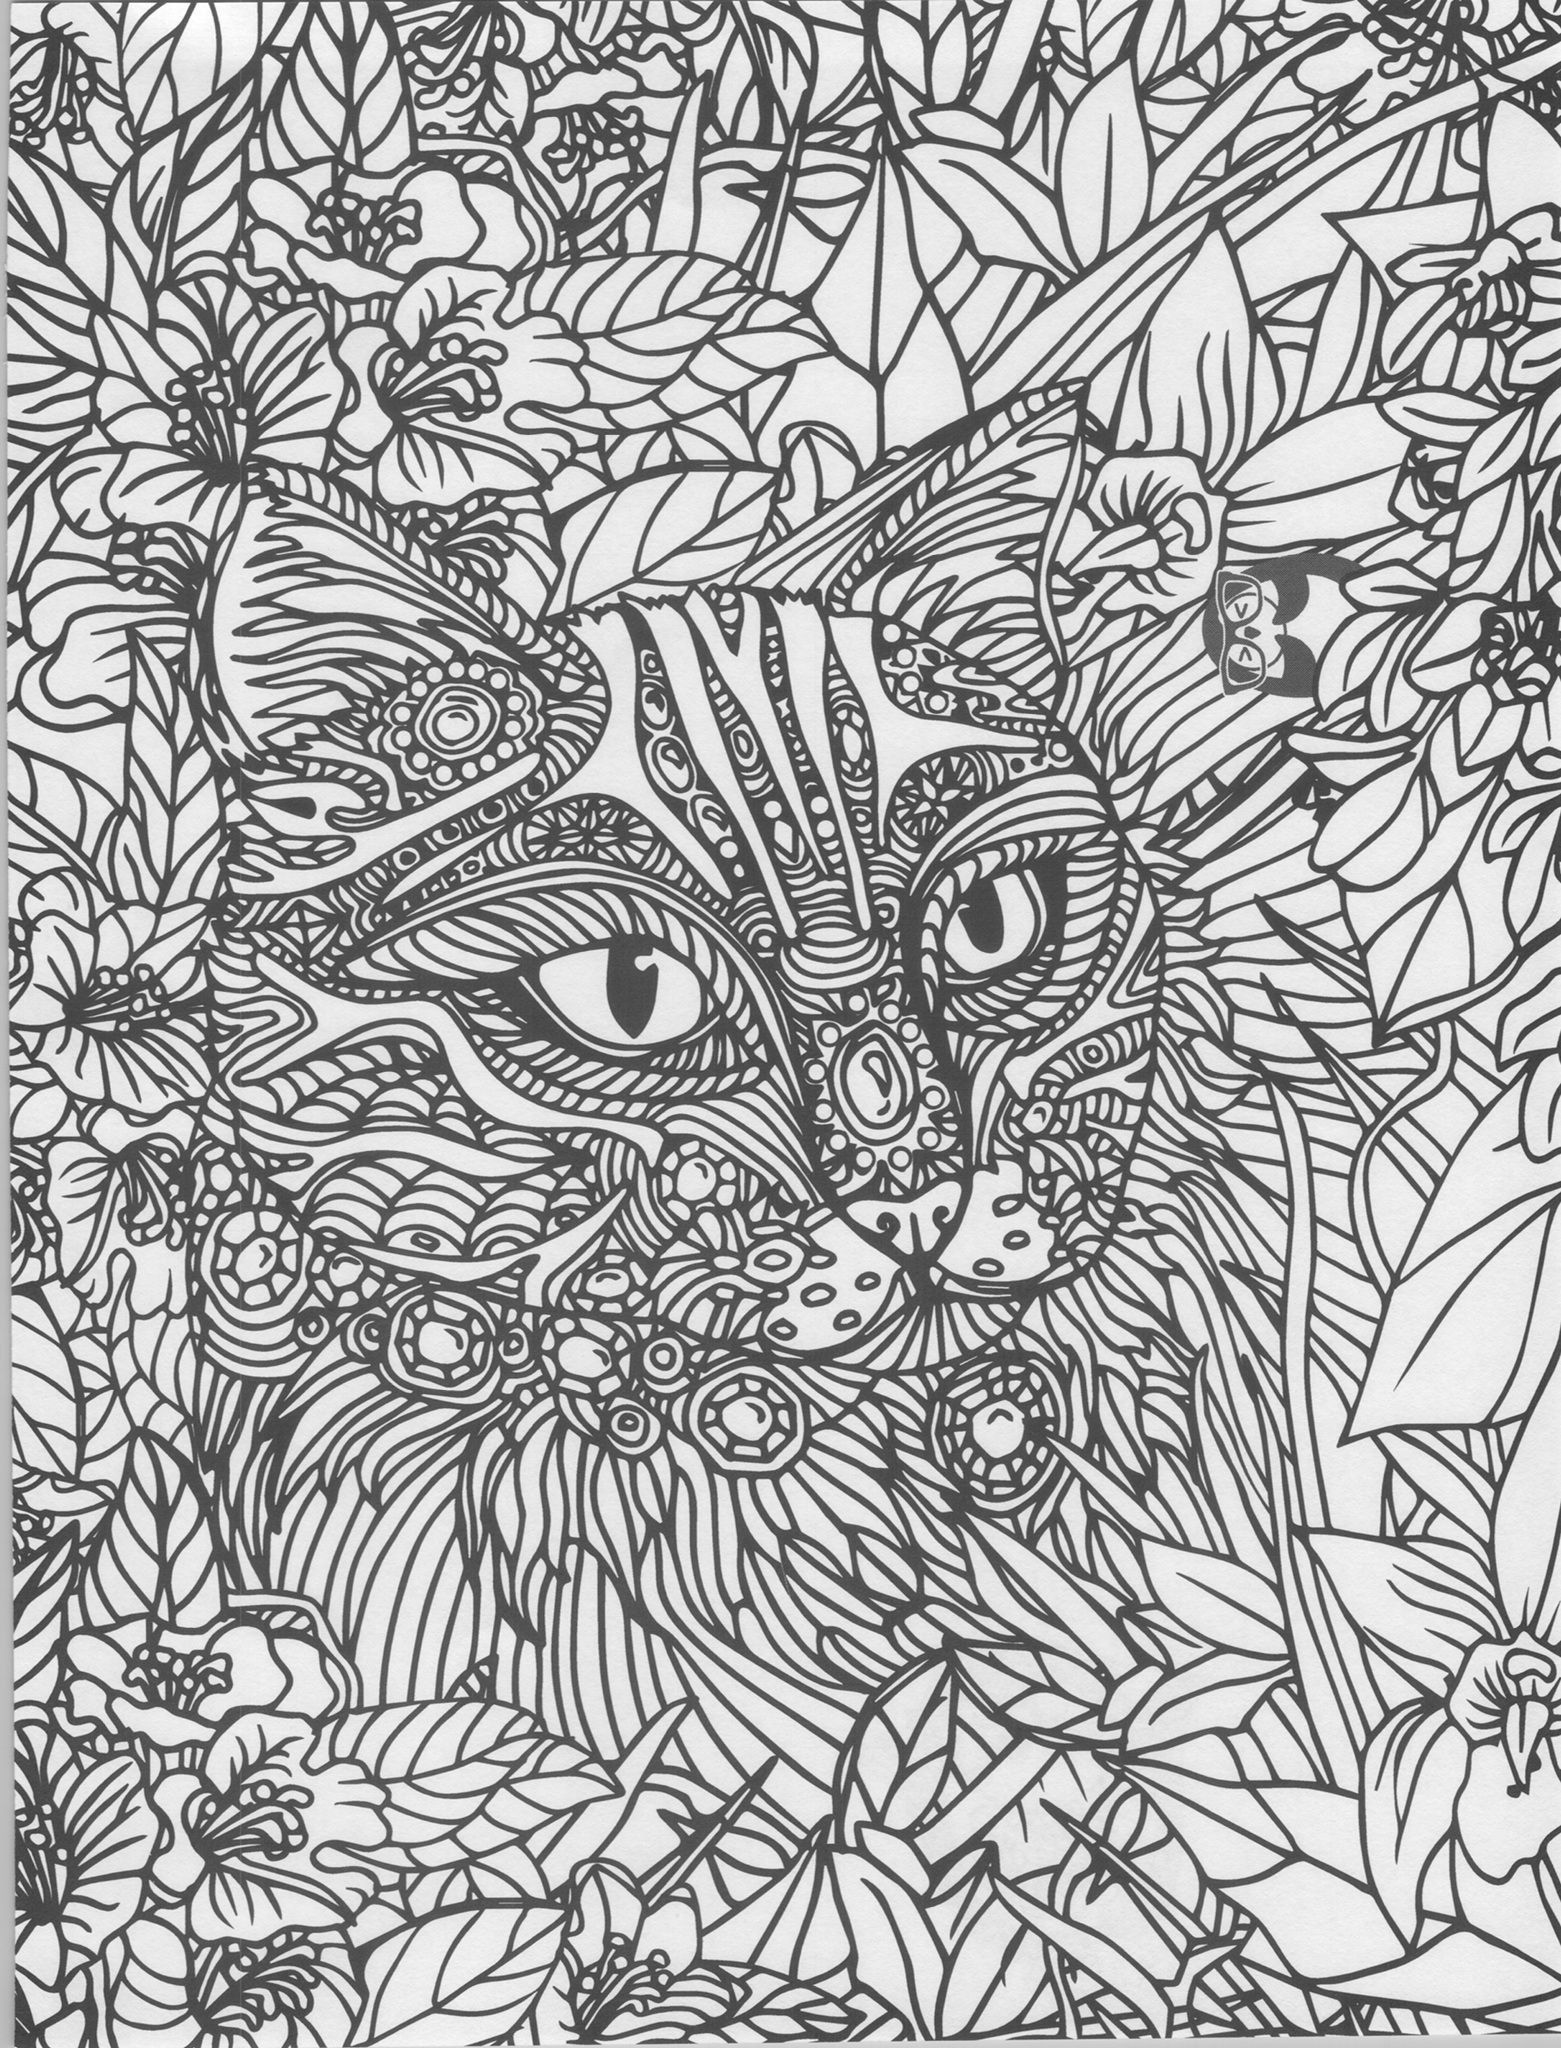 Cat Zentangle Coloring Page Youngandtae Com Animal Coloring Pages Dog Coloring Page Cat Coloring Page [ 2048 x 1561 Pixel ]